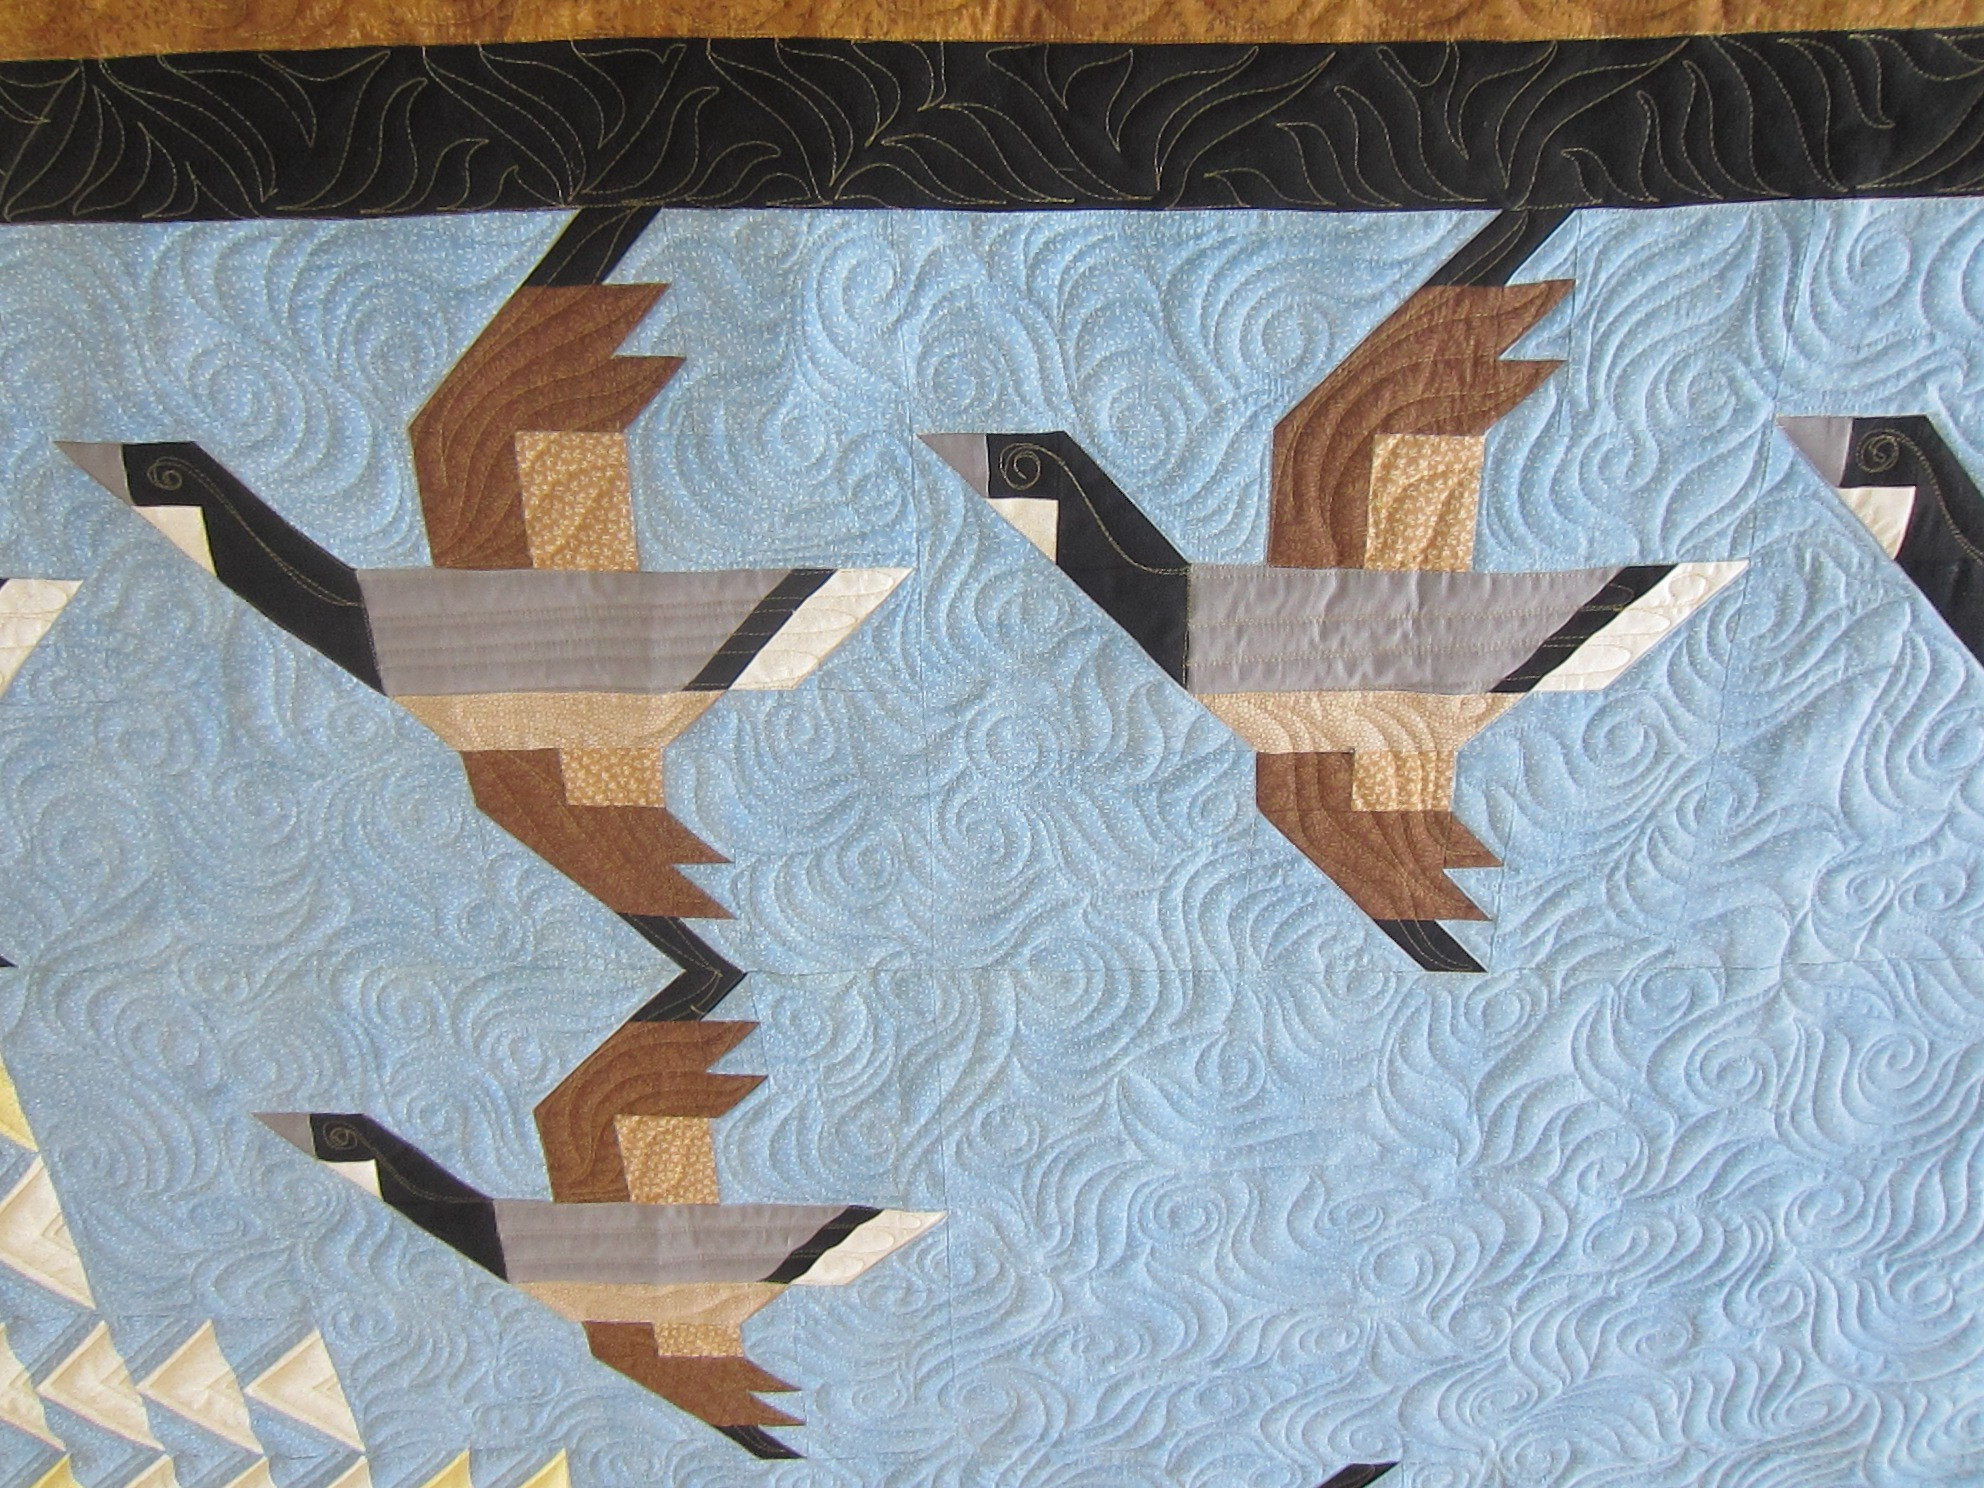 Flying Geese Quilt | pamelajeannestudio : flying geese quilt block pattern - Adamdwight.com